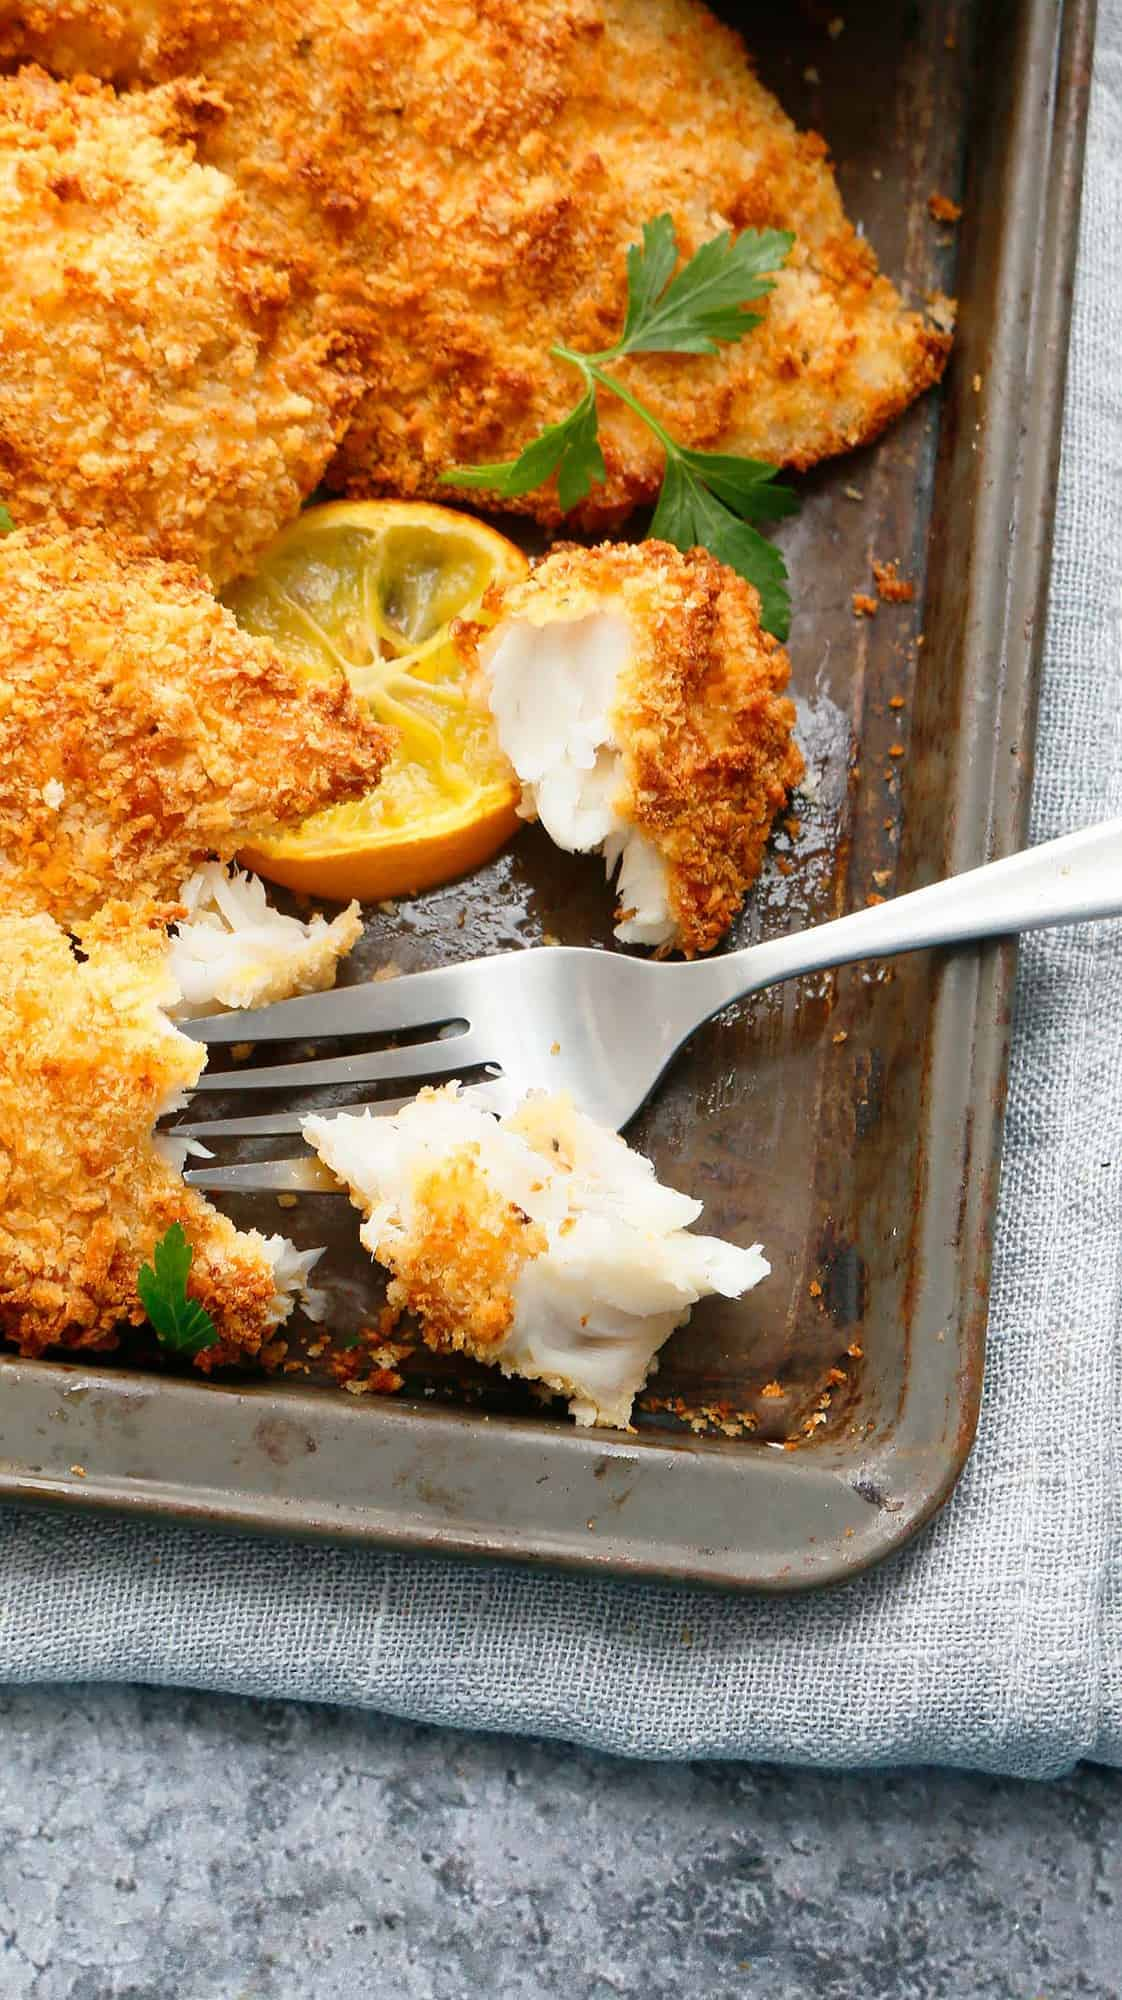 baking tray with crispy tilapia with one cut into chunks with a fork